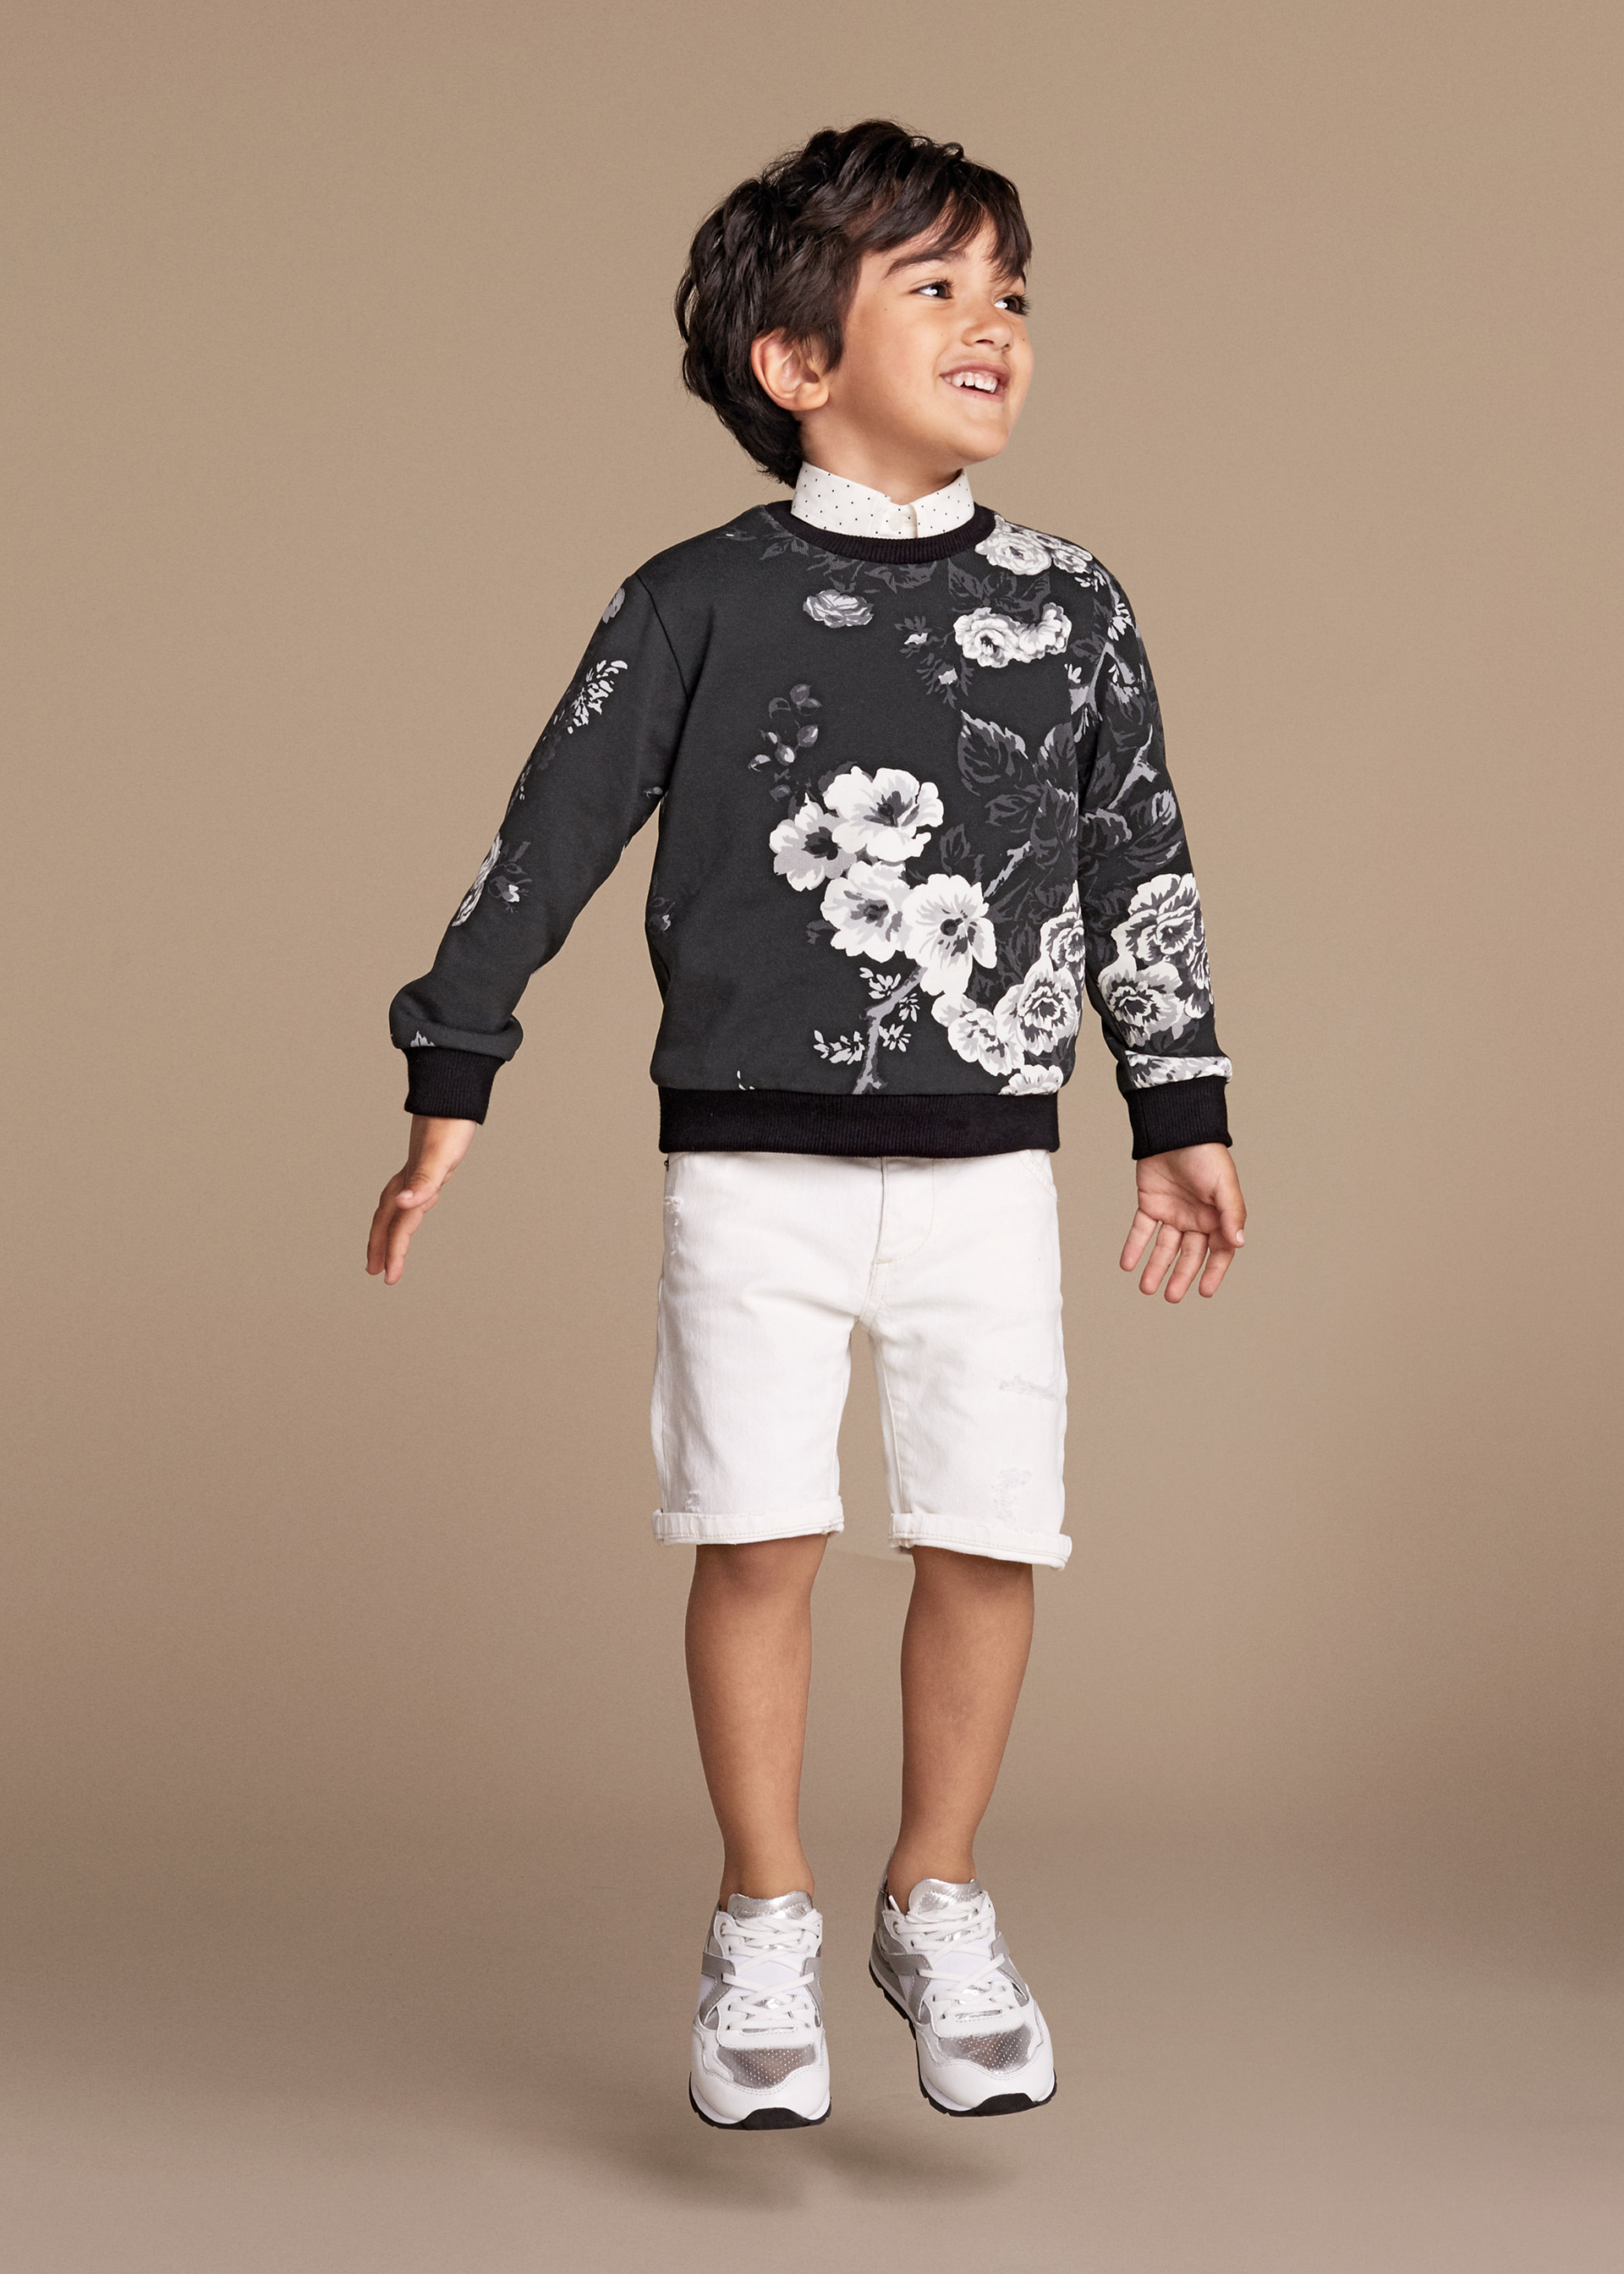 dolce-and-gabbana-summer-2016-child-collection-731